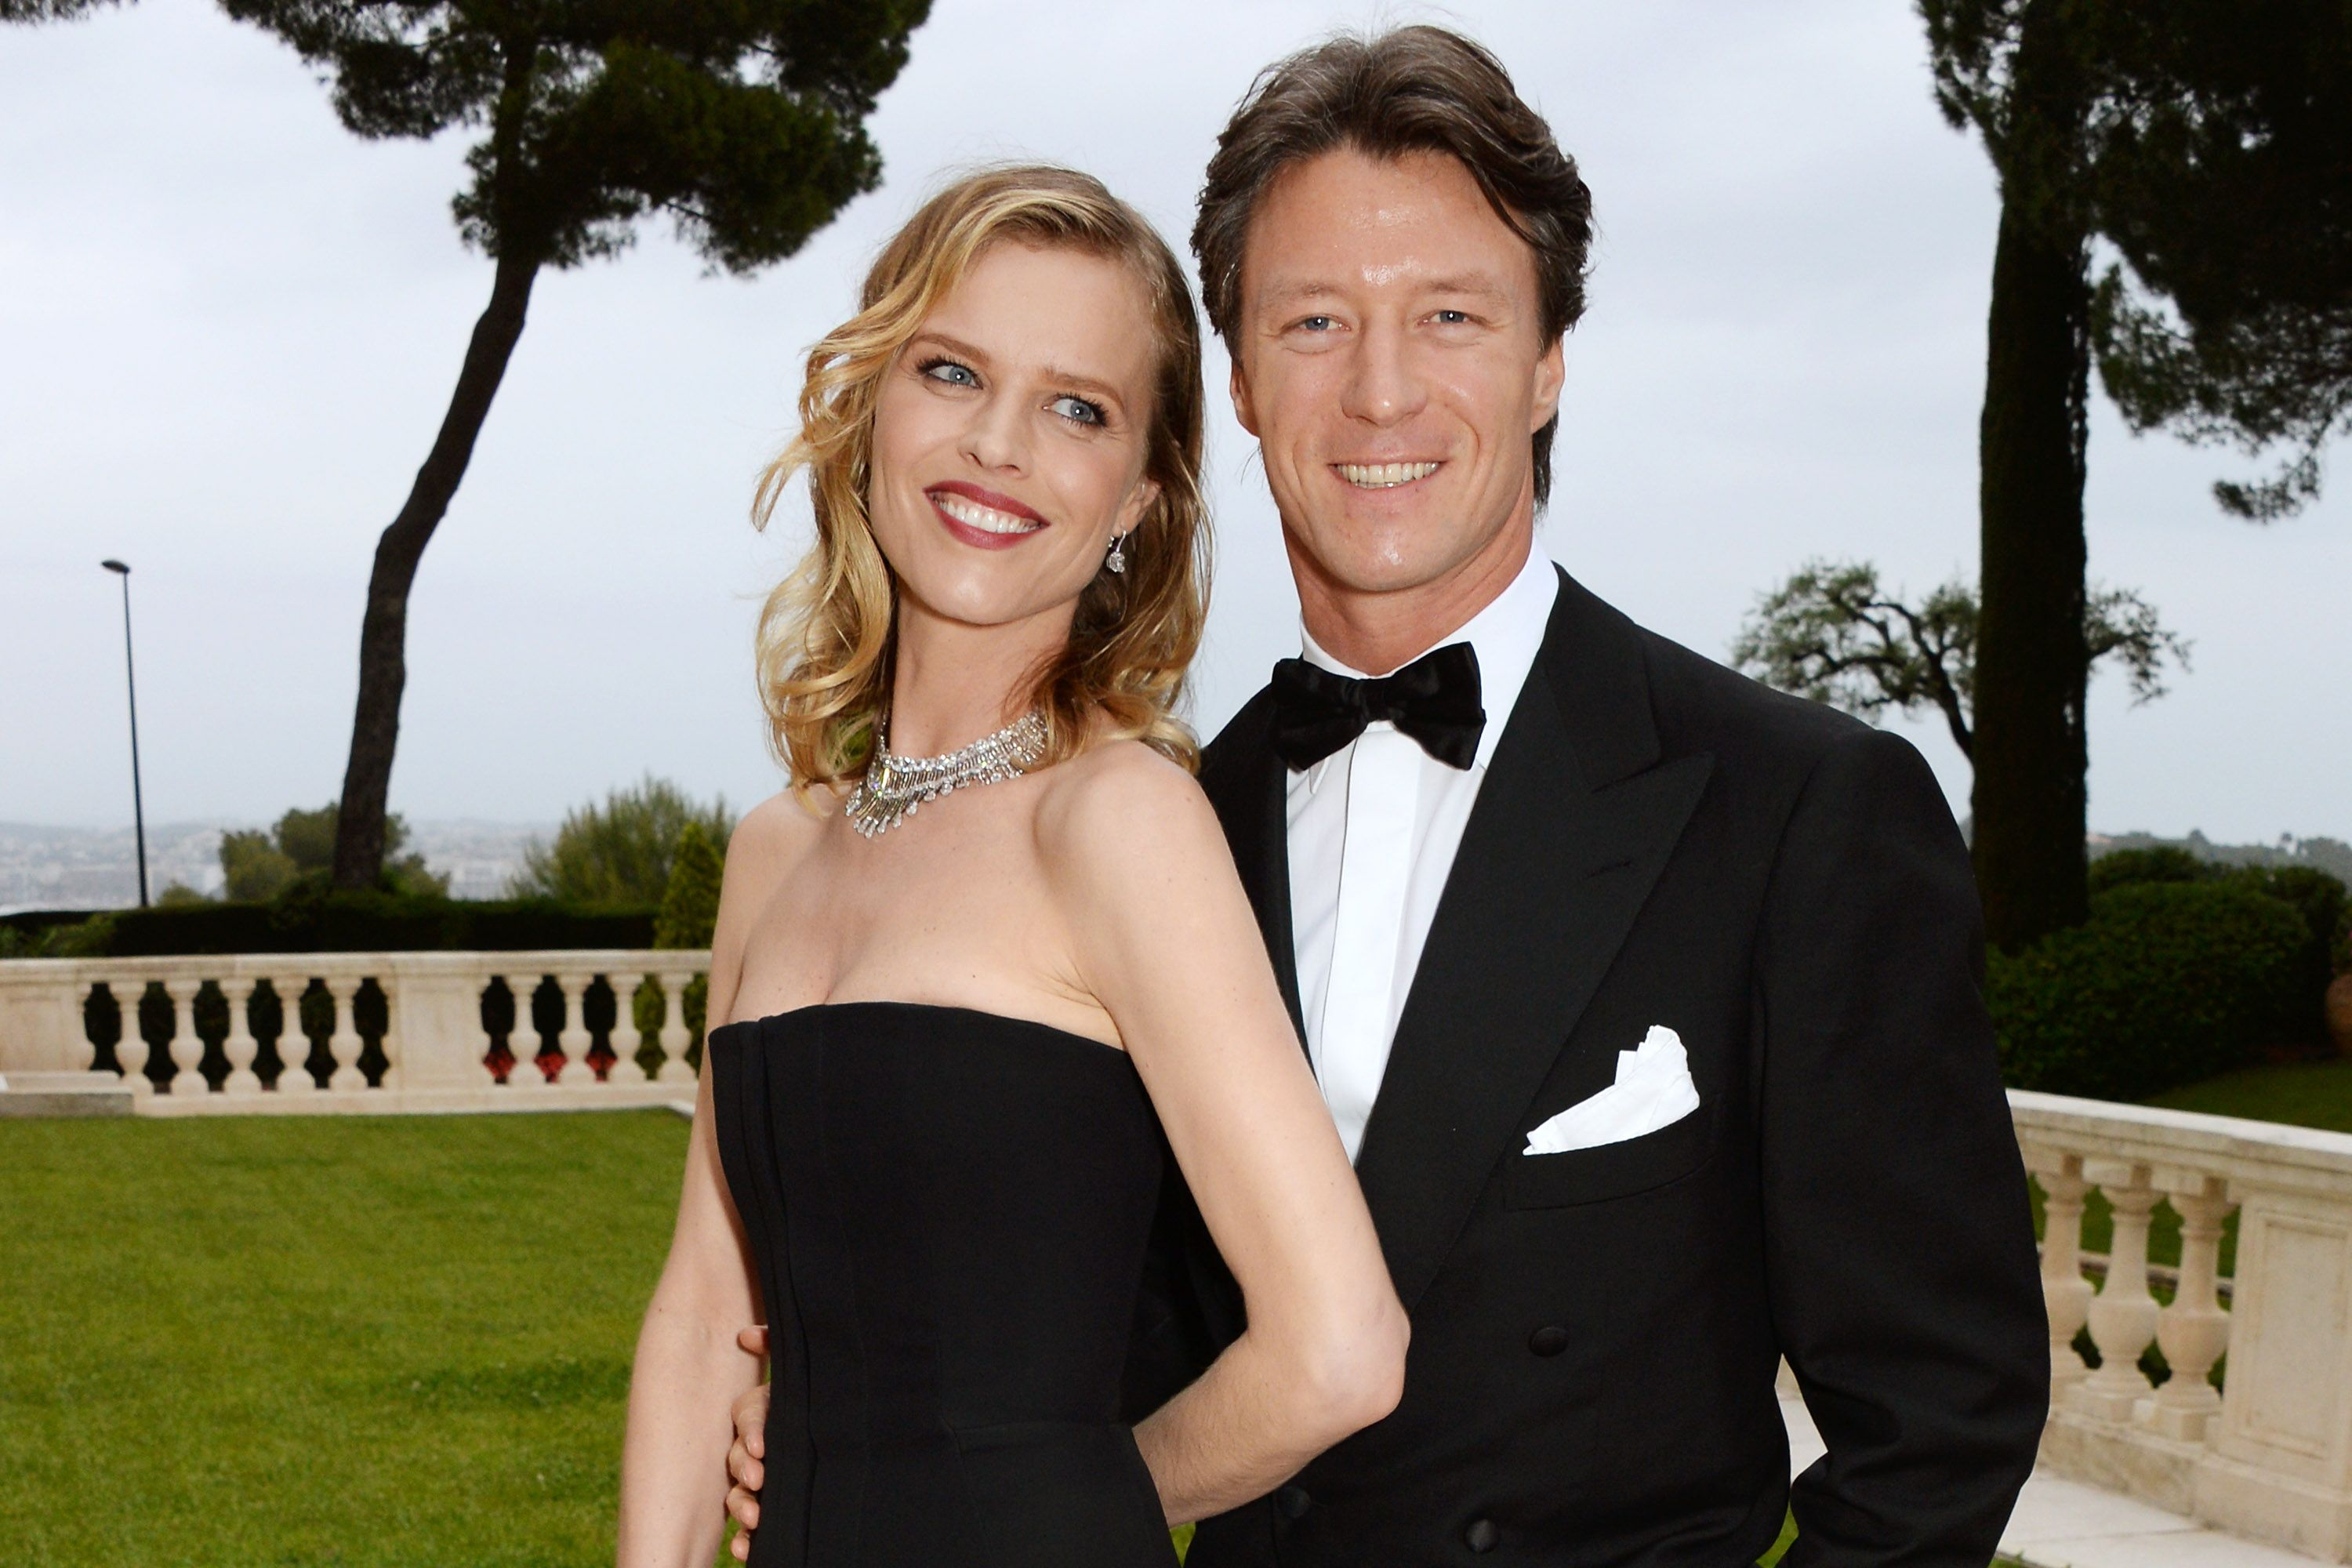 Eva Herzigova Is Engaged To Gregorio Marsiaj